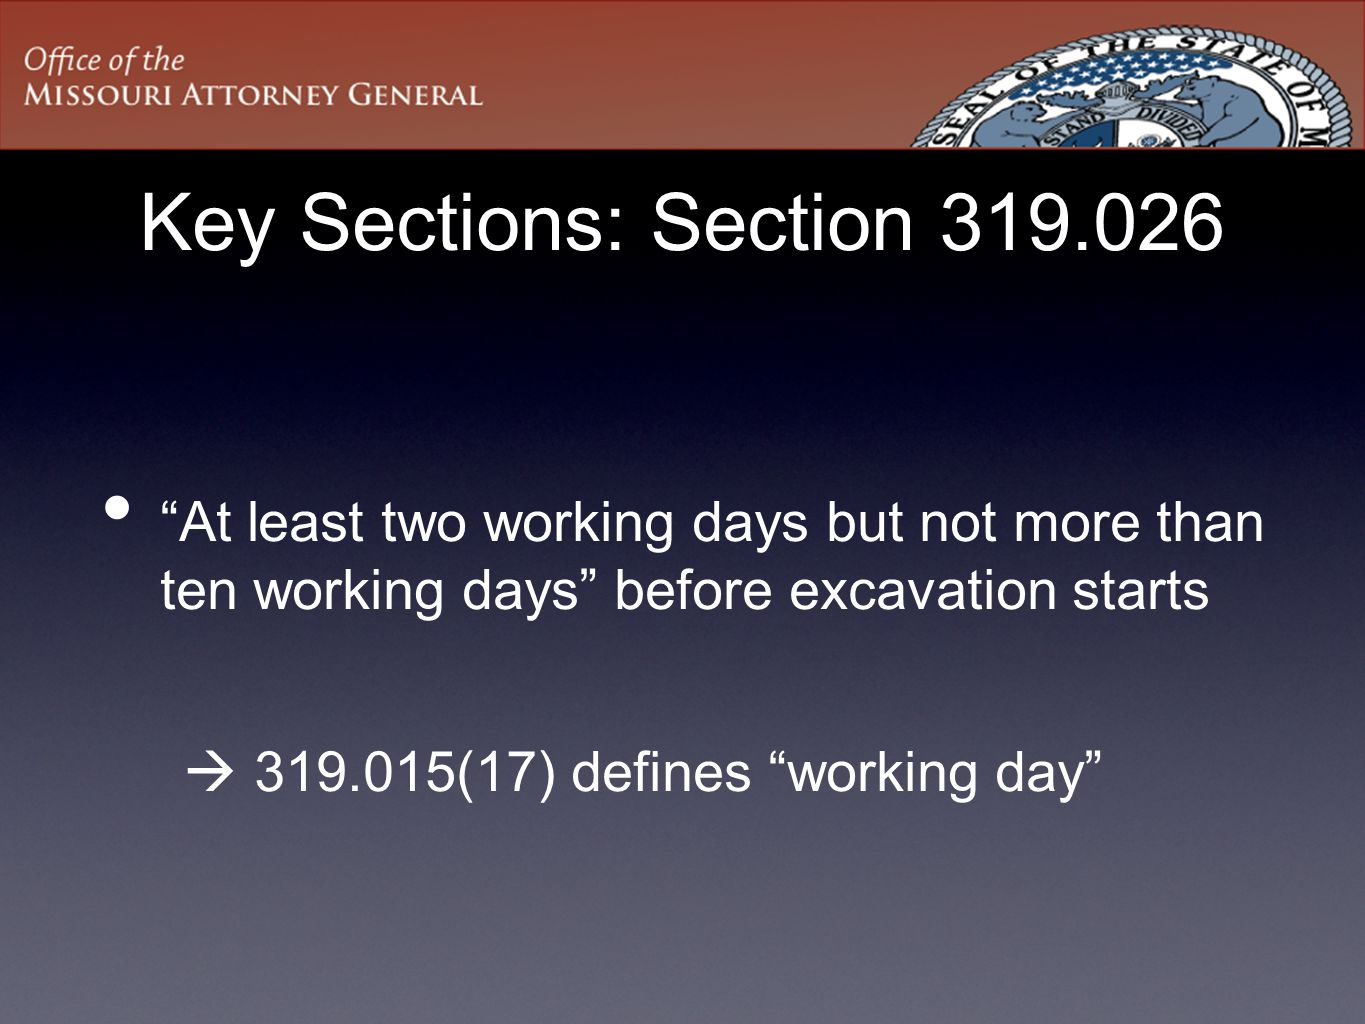 Key Sections: Section 319.026 At least two working days but not more than ten working days before excavation starts.